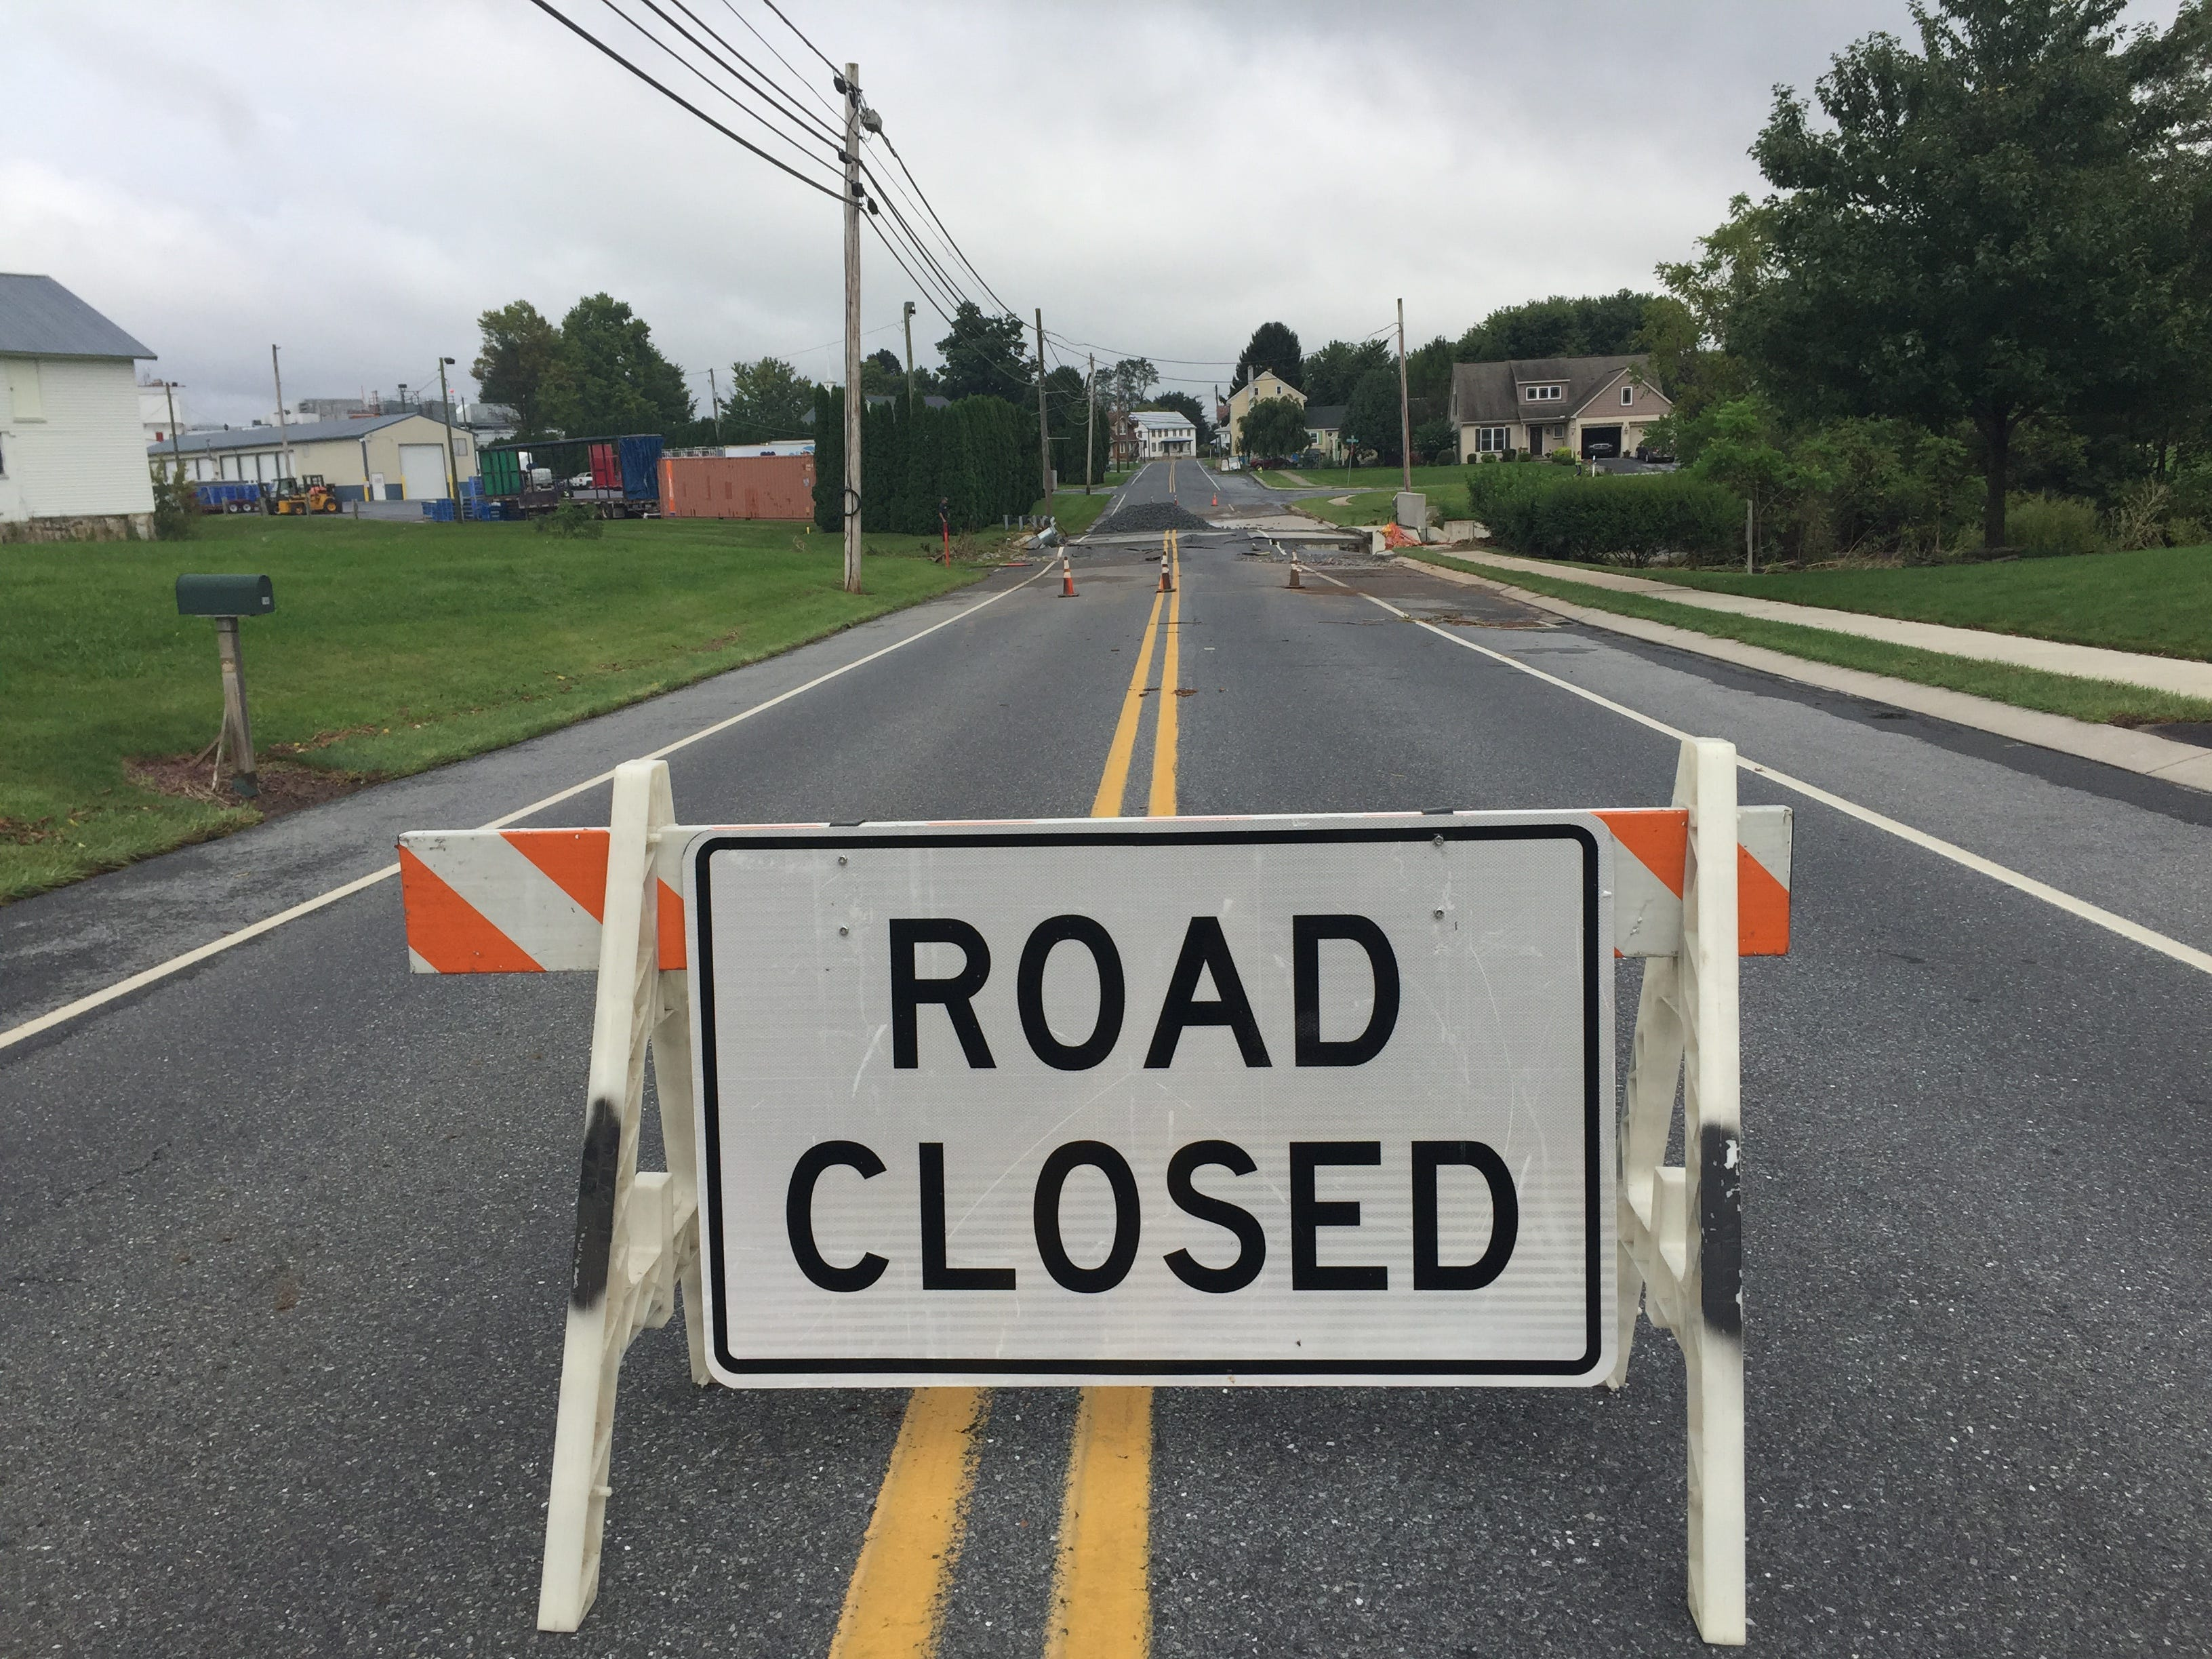 Airport Road was closed near Horizon Drive in Fredericksburg Aug. 31, 2018 after floodwaters washed out a bridge over Deep Run Creek.